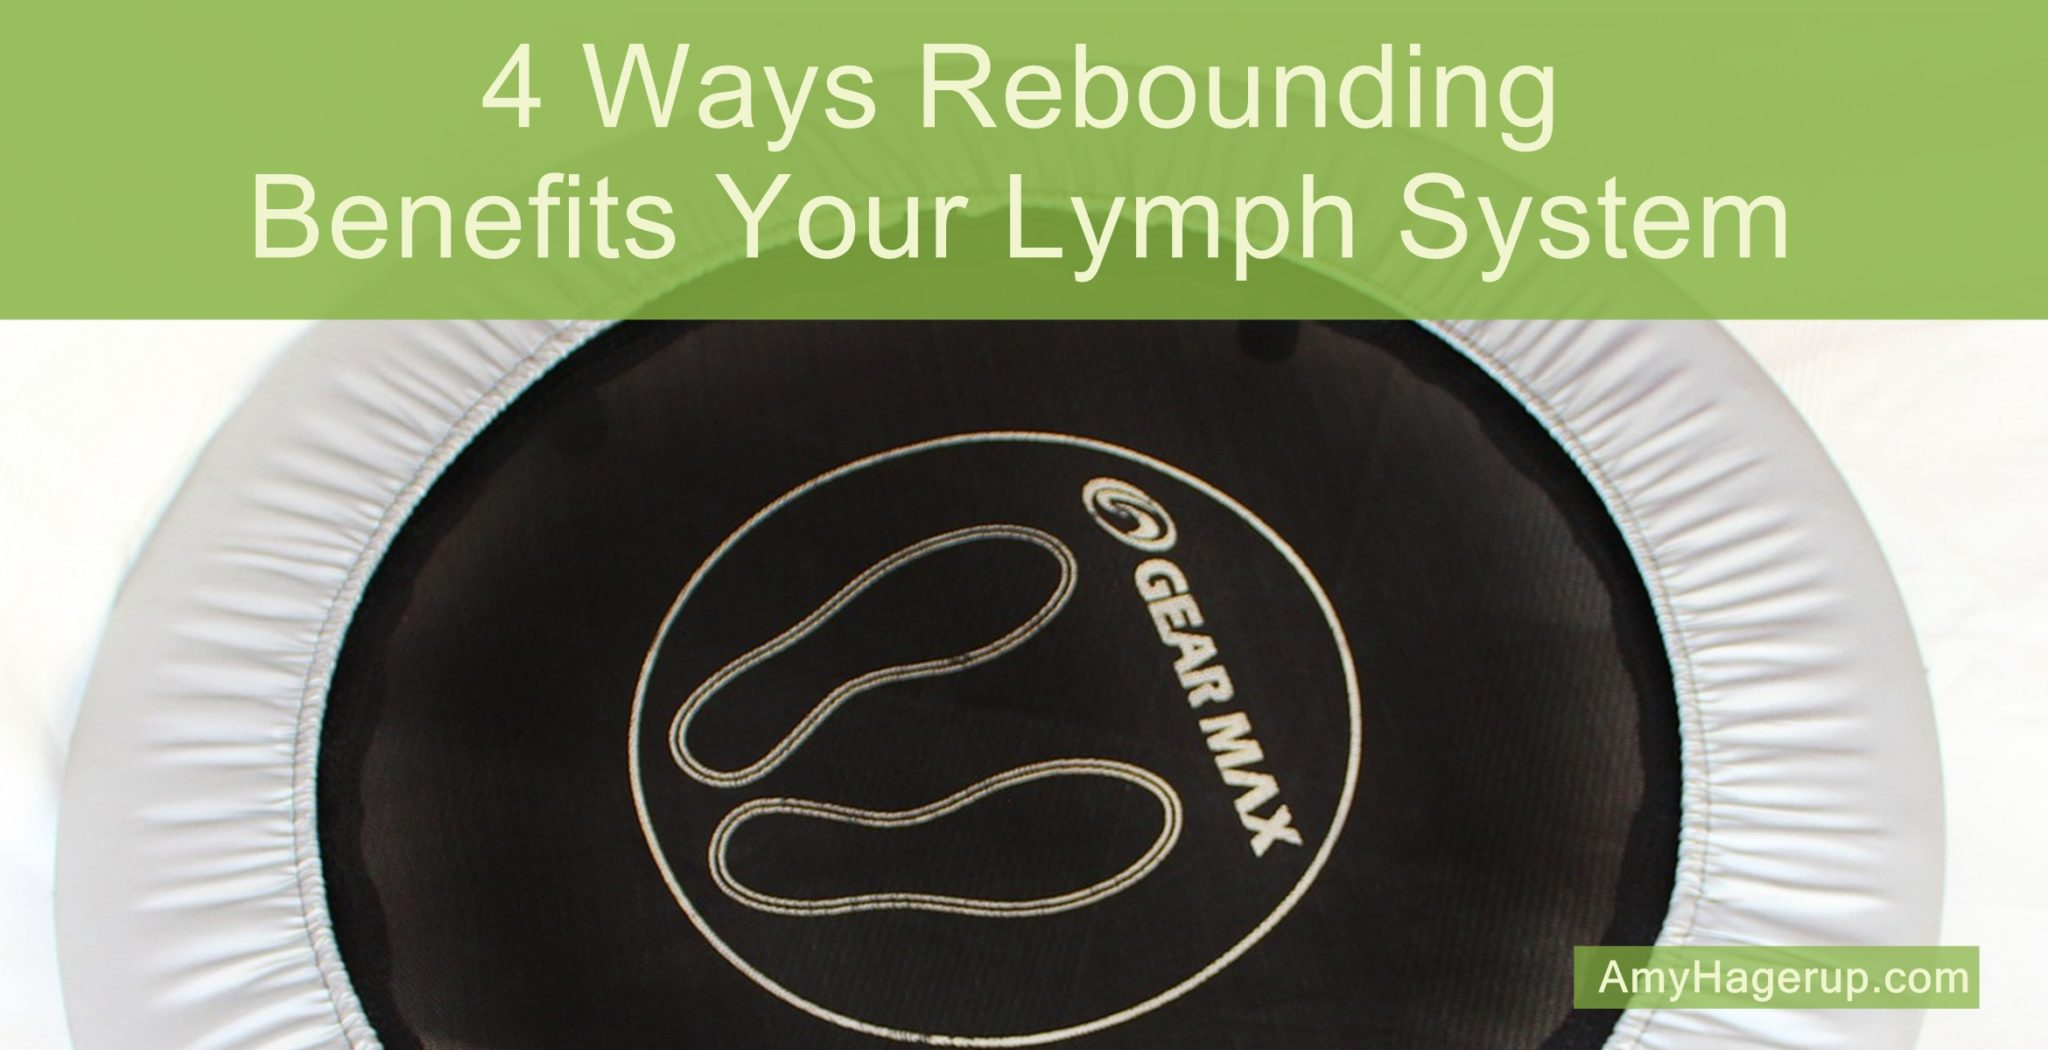 Here are 4 ways that rebounding benefits your lymph system